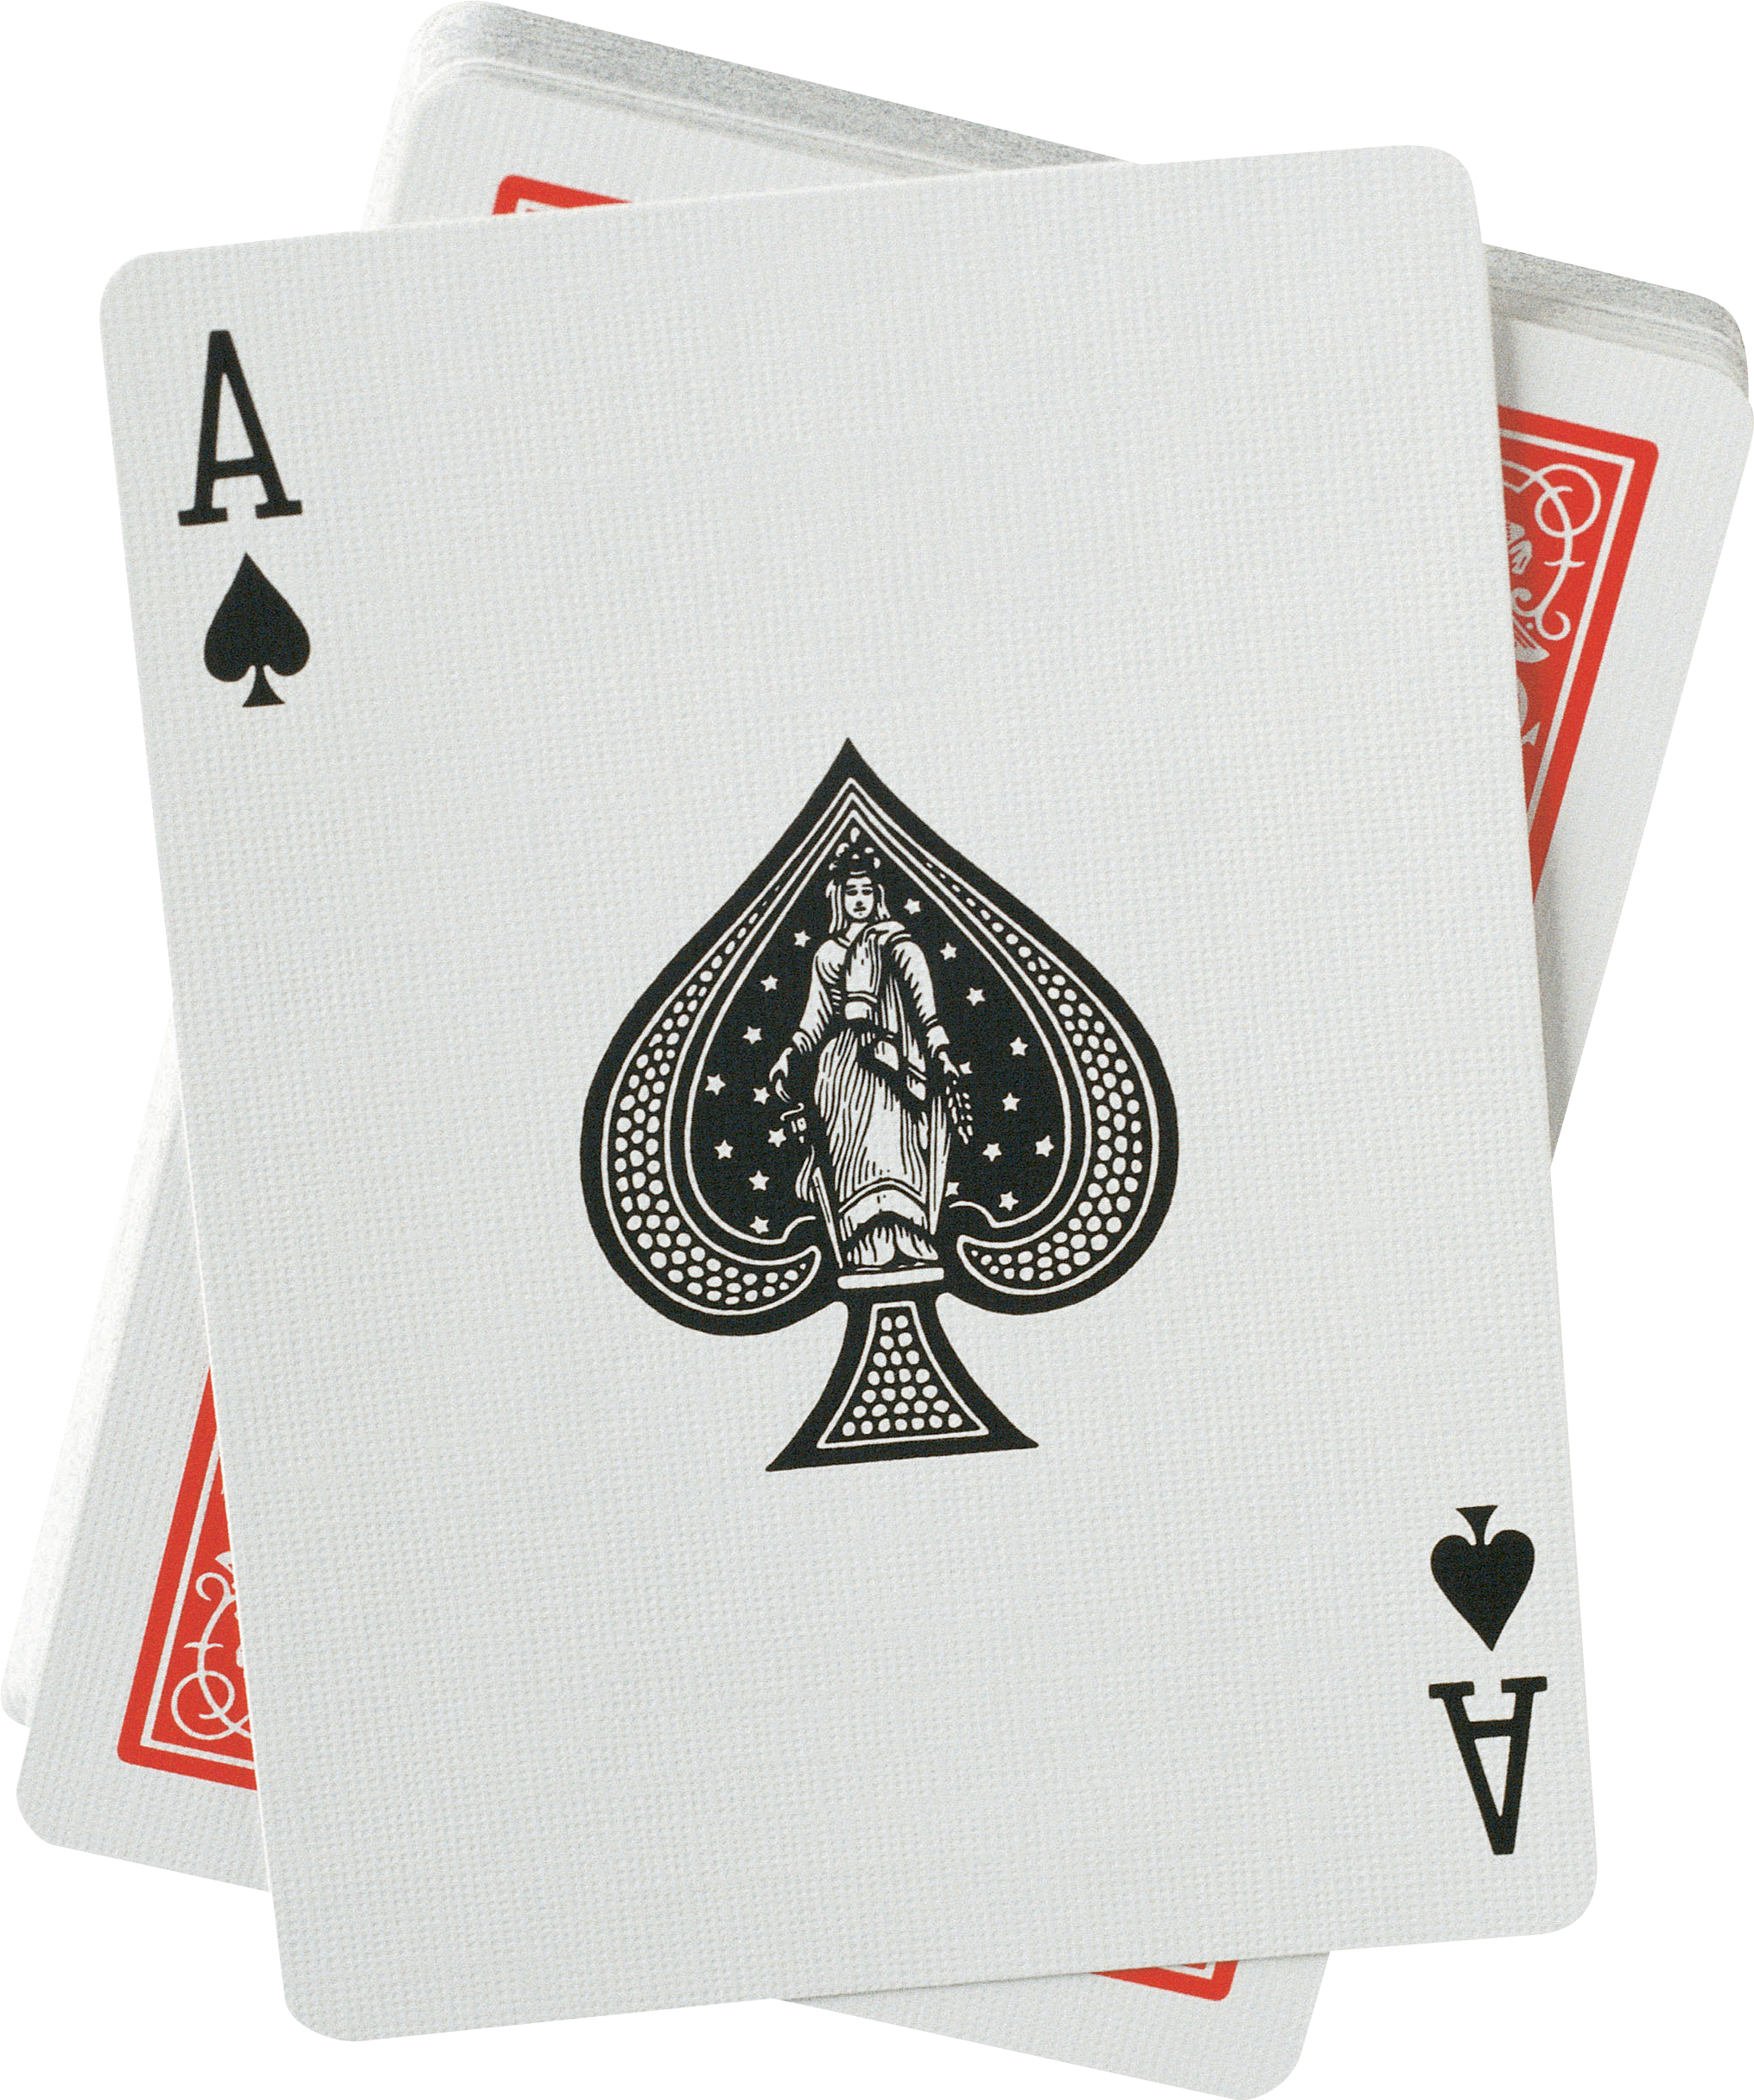 United Spades Ace Of Company States Cards PNG Image